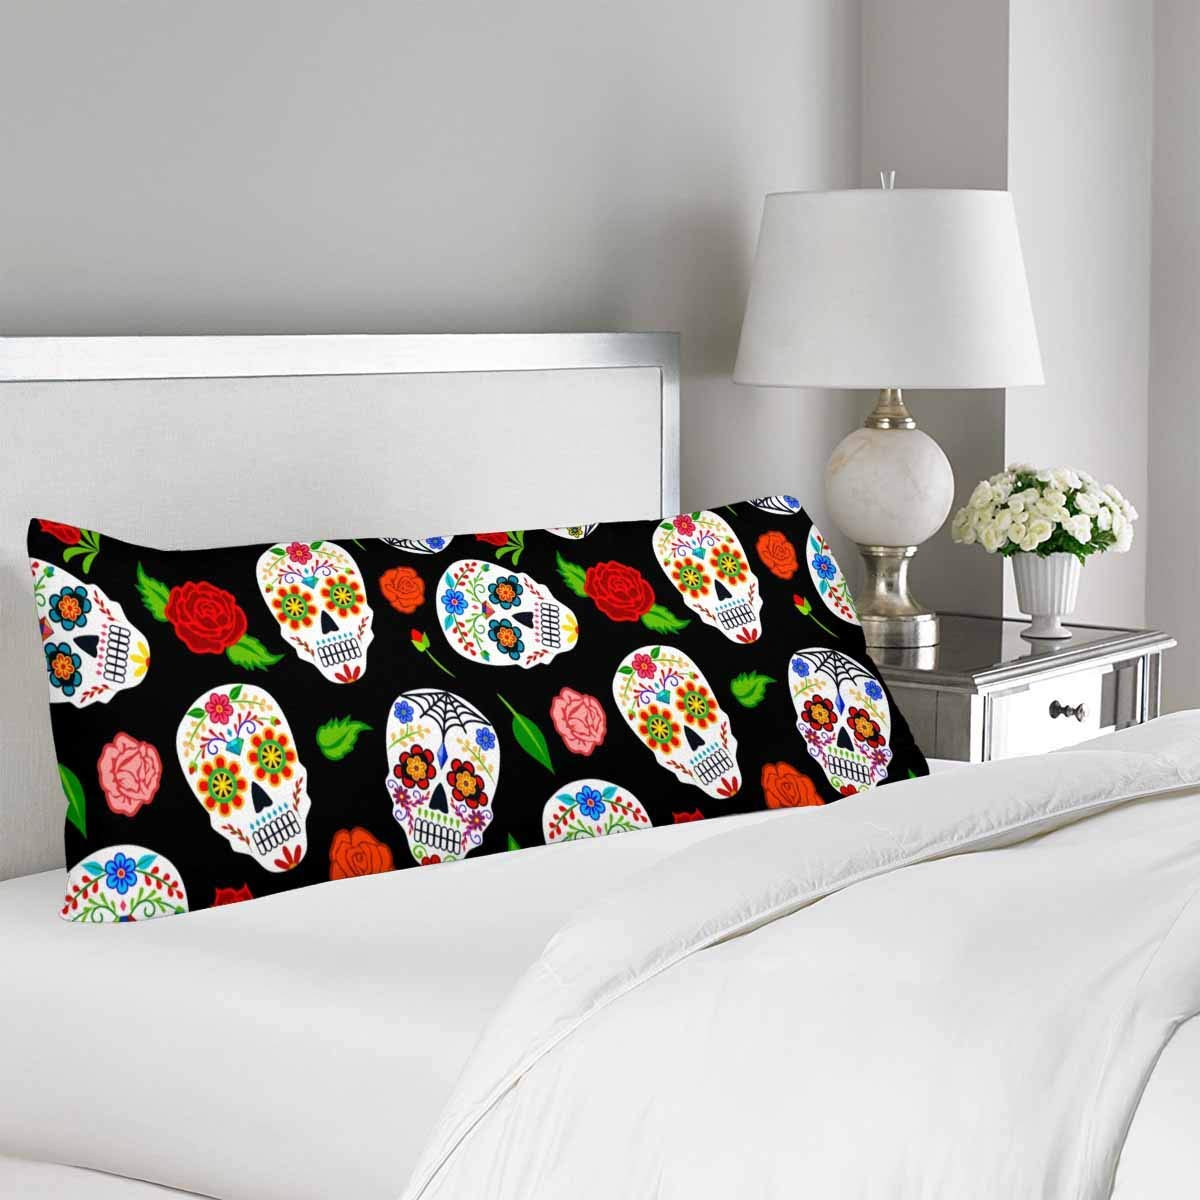 GCKG Mexican Dia Los Muertos Sugar Skulls Roses Pillow Covers Pillowcase 20x60 inches, Body Pillow Case Protector - image 1 of 2